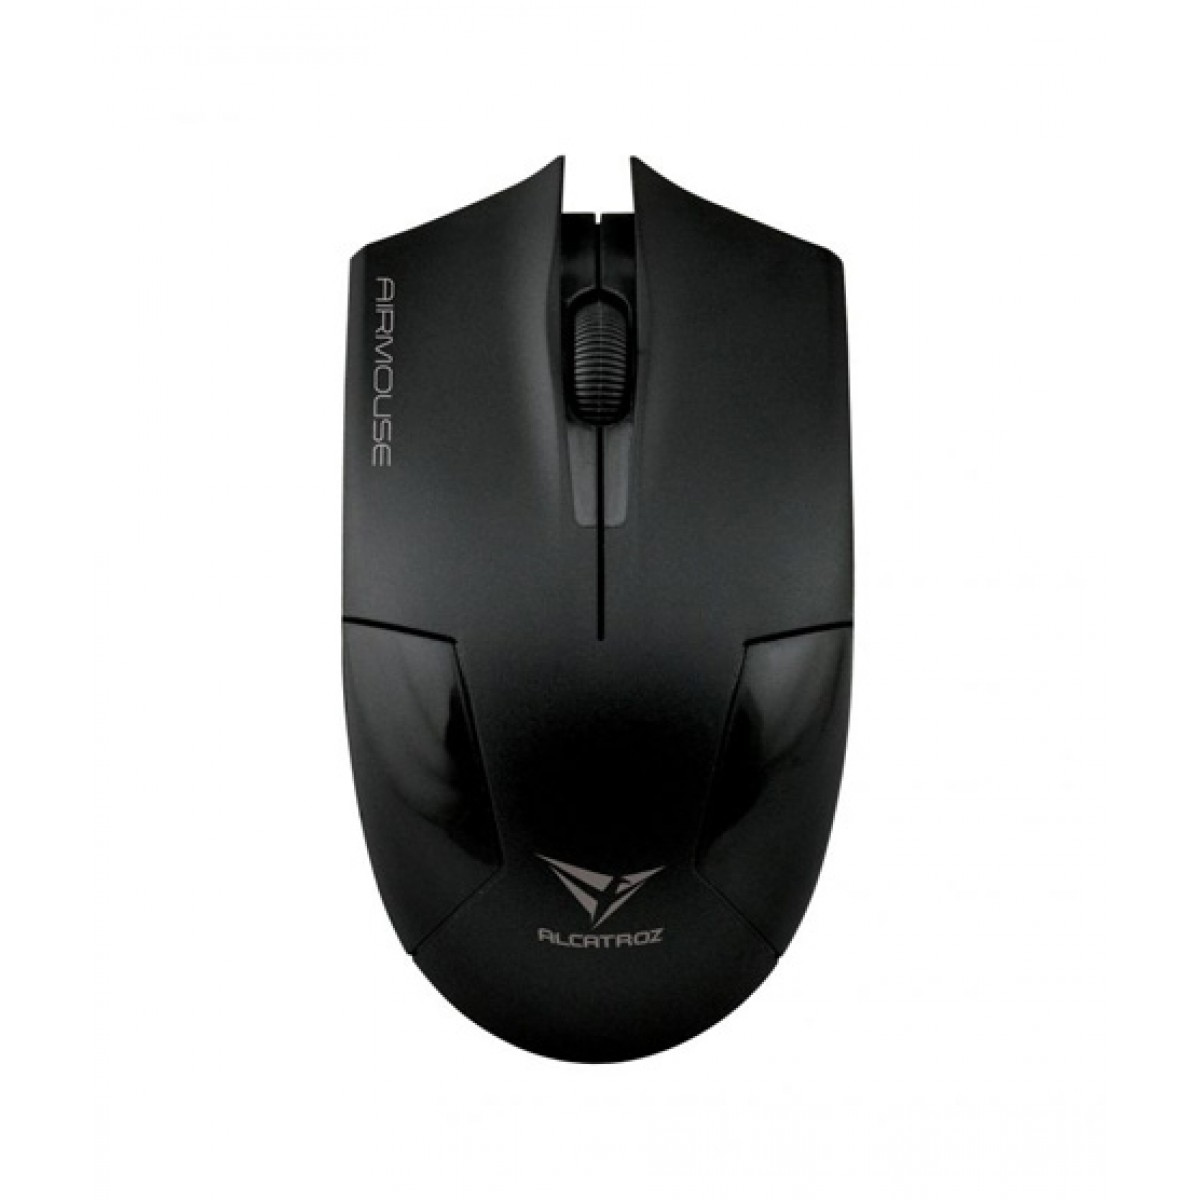 Alcatroz AirMouse Wireless Optical Mouse Black